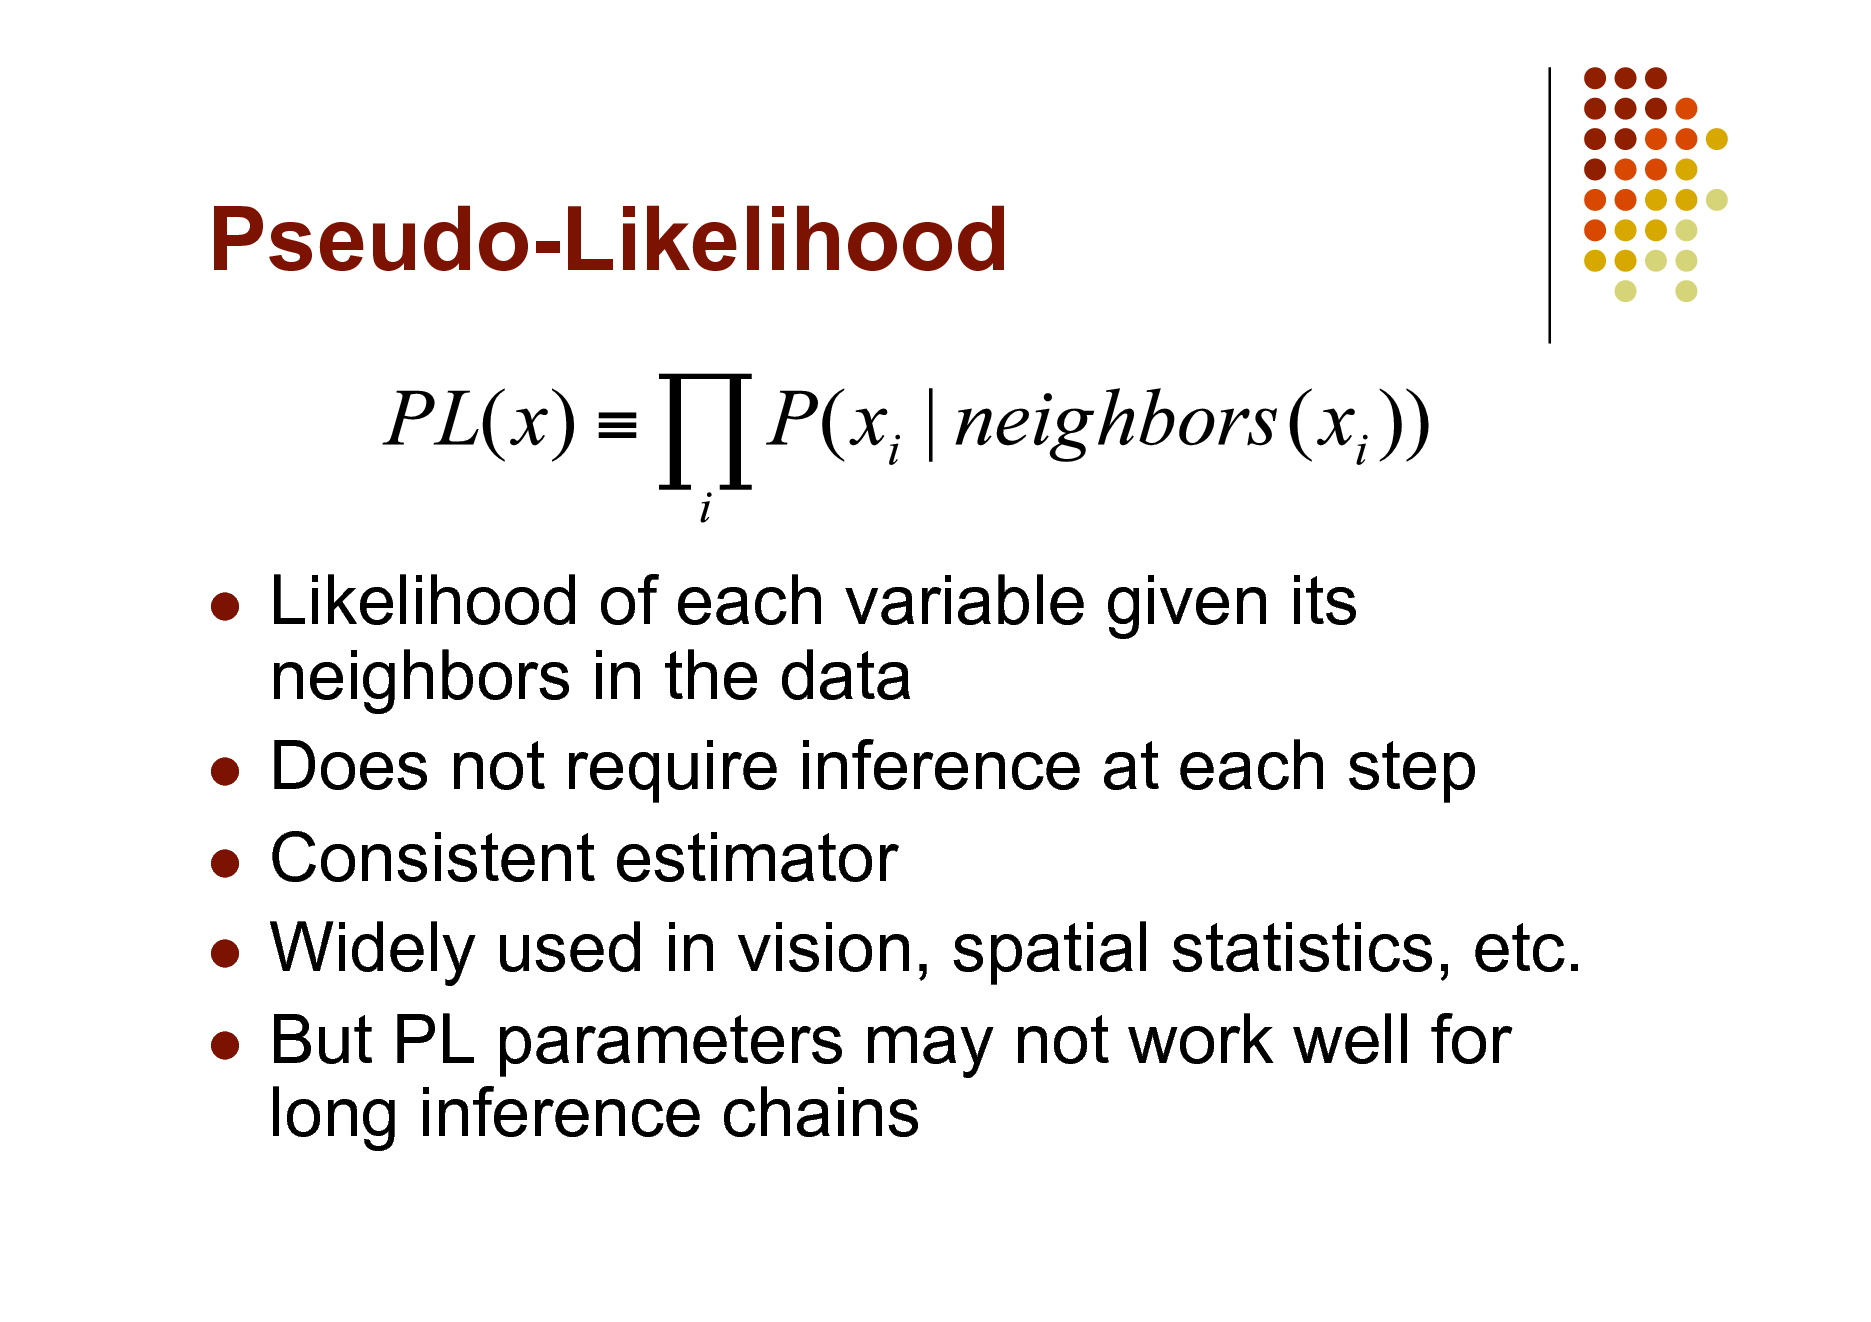 Slide: Pseudo-Likelihood  Likelihood of each variable given its neighbors in the data  Does not require inference at each step  Consistent estimator  Widely used in vision, spatial statistics, etc.  But PL parameters may not work well for long inference chains